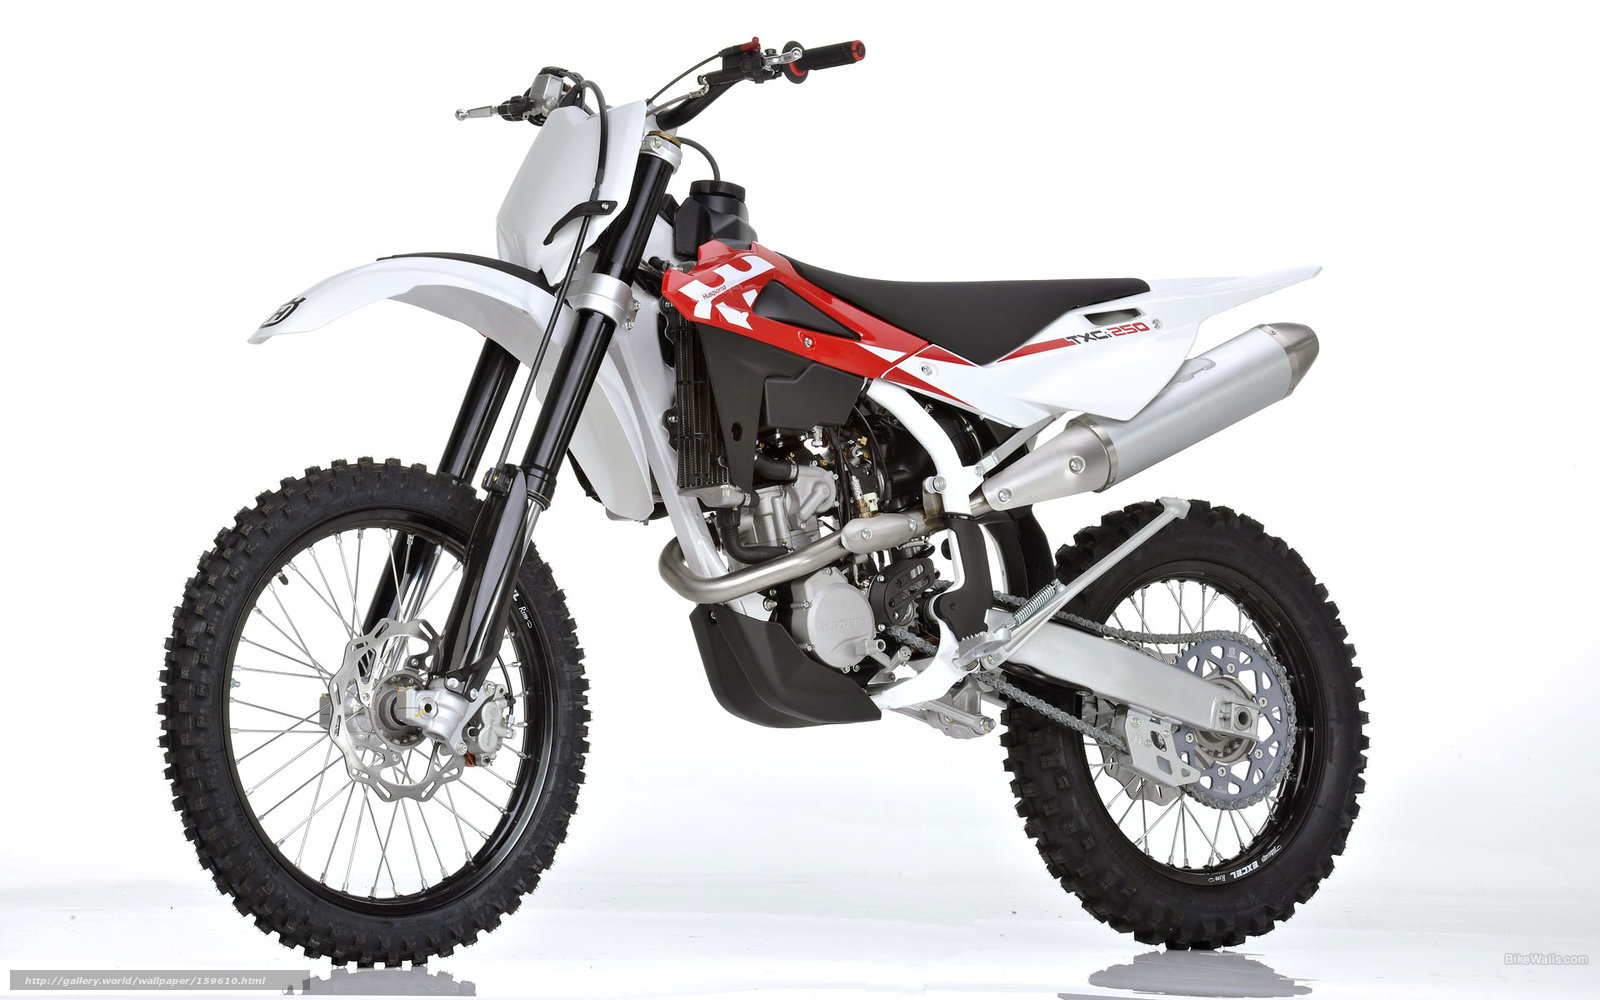 Download Wallpaper Husqvarna, MX, TXC250, TXC250 2011 Free